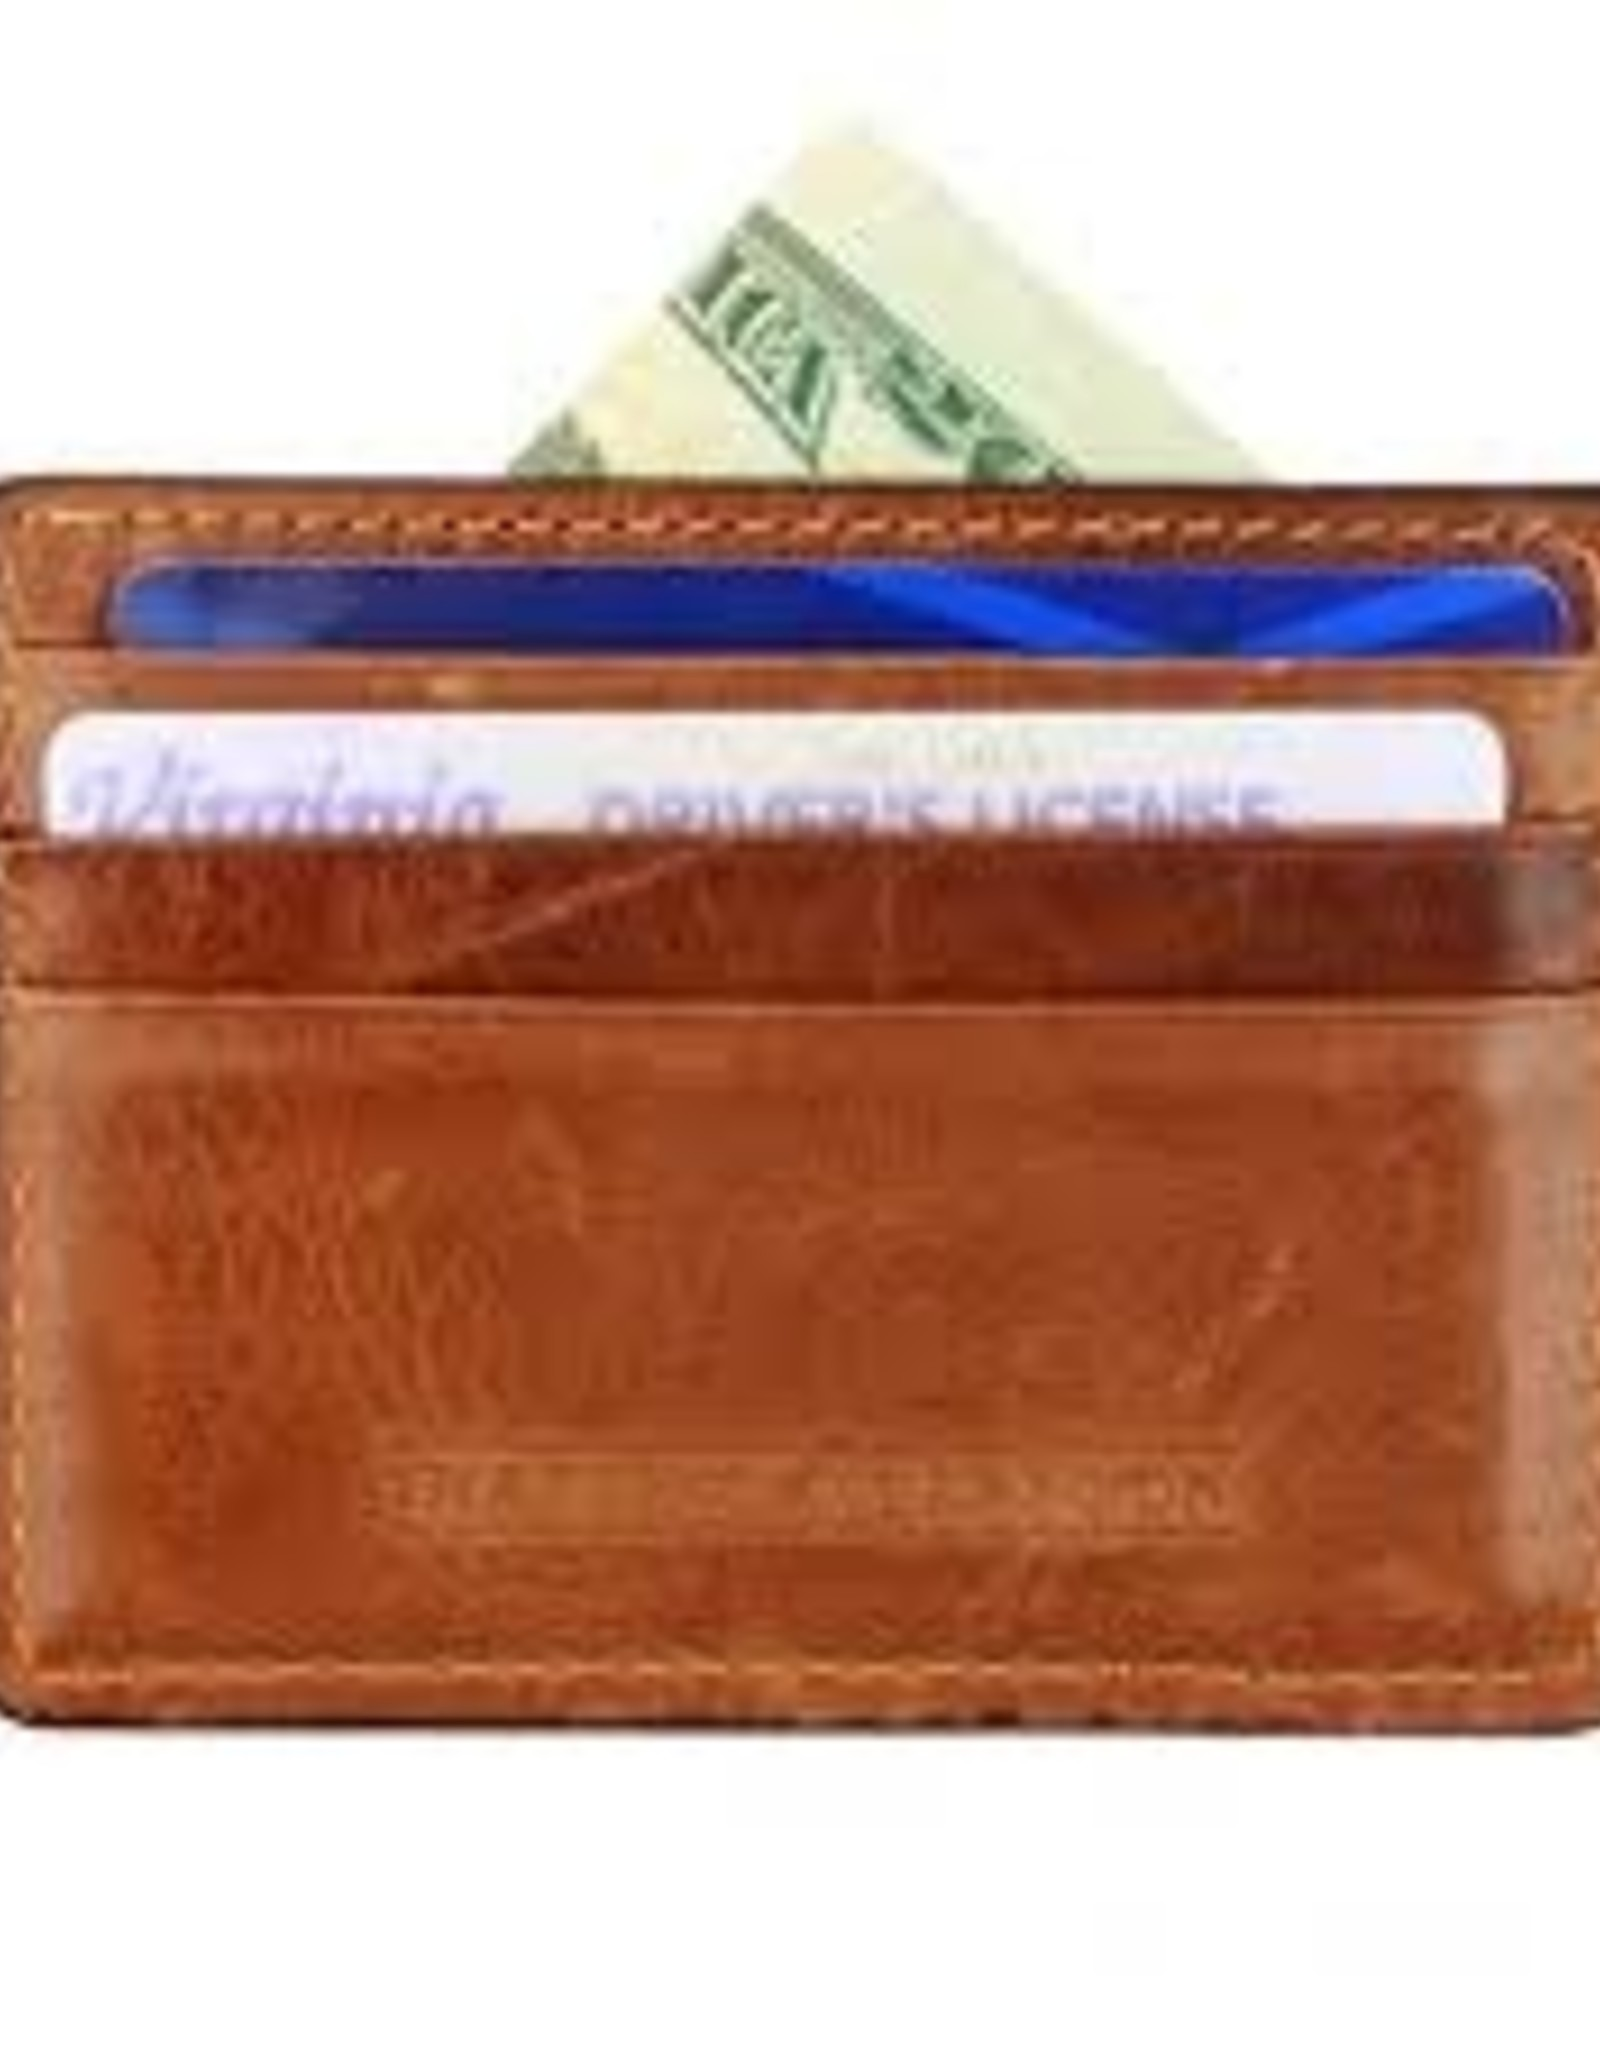 Smathers & Branson 19th Hole Needlepoint Card wallet